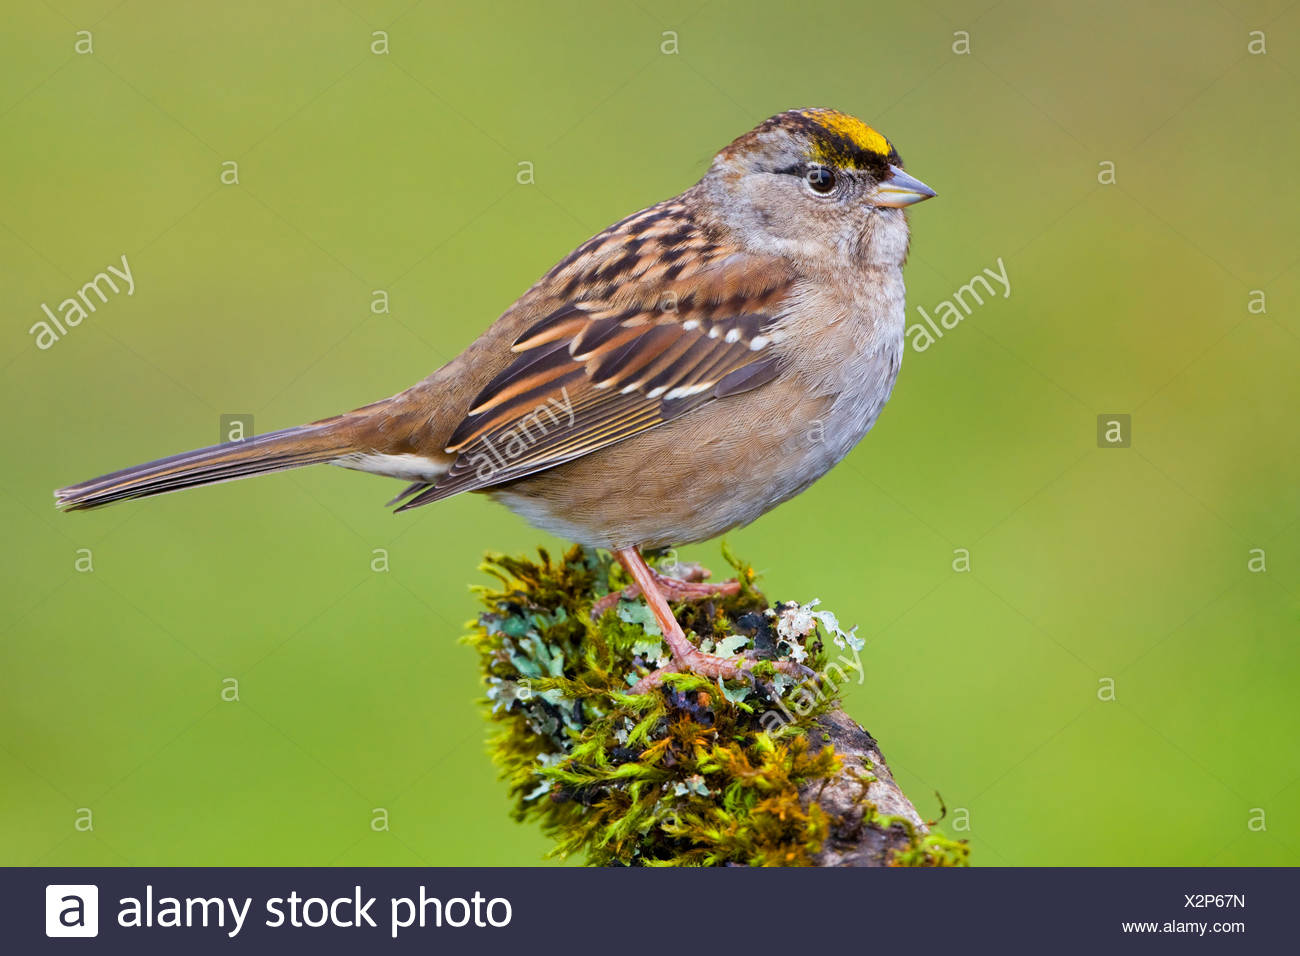 Golden-crowned Sparrow (Zonotrichia atricapilla) perched on mossy branch in Victoria, Vancouver Island, British Columbia, Canada - Stock Image